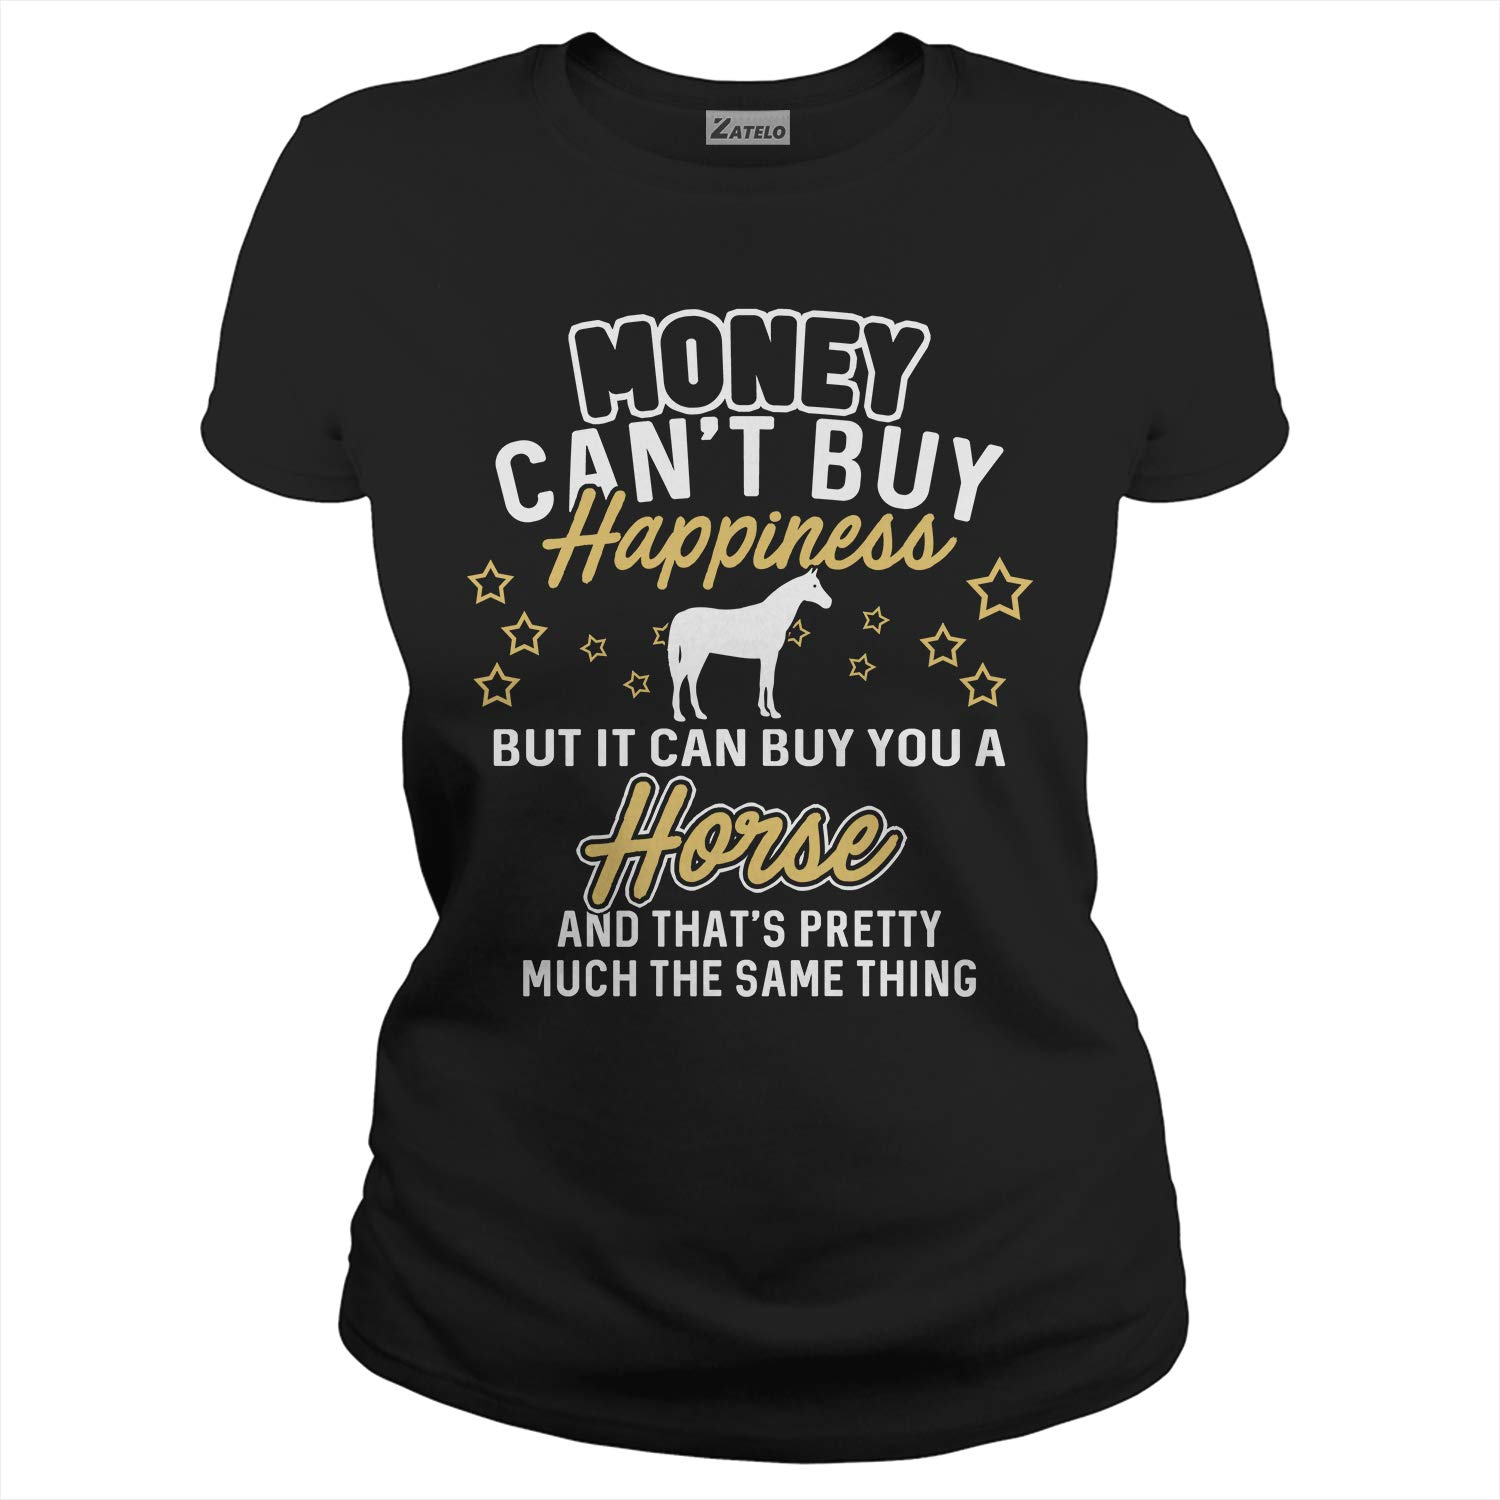 Zatelo Money Cant Buy Happiness BUT IT CAN Buy A Horse T-Shirt